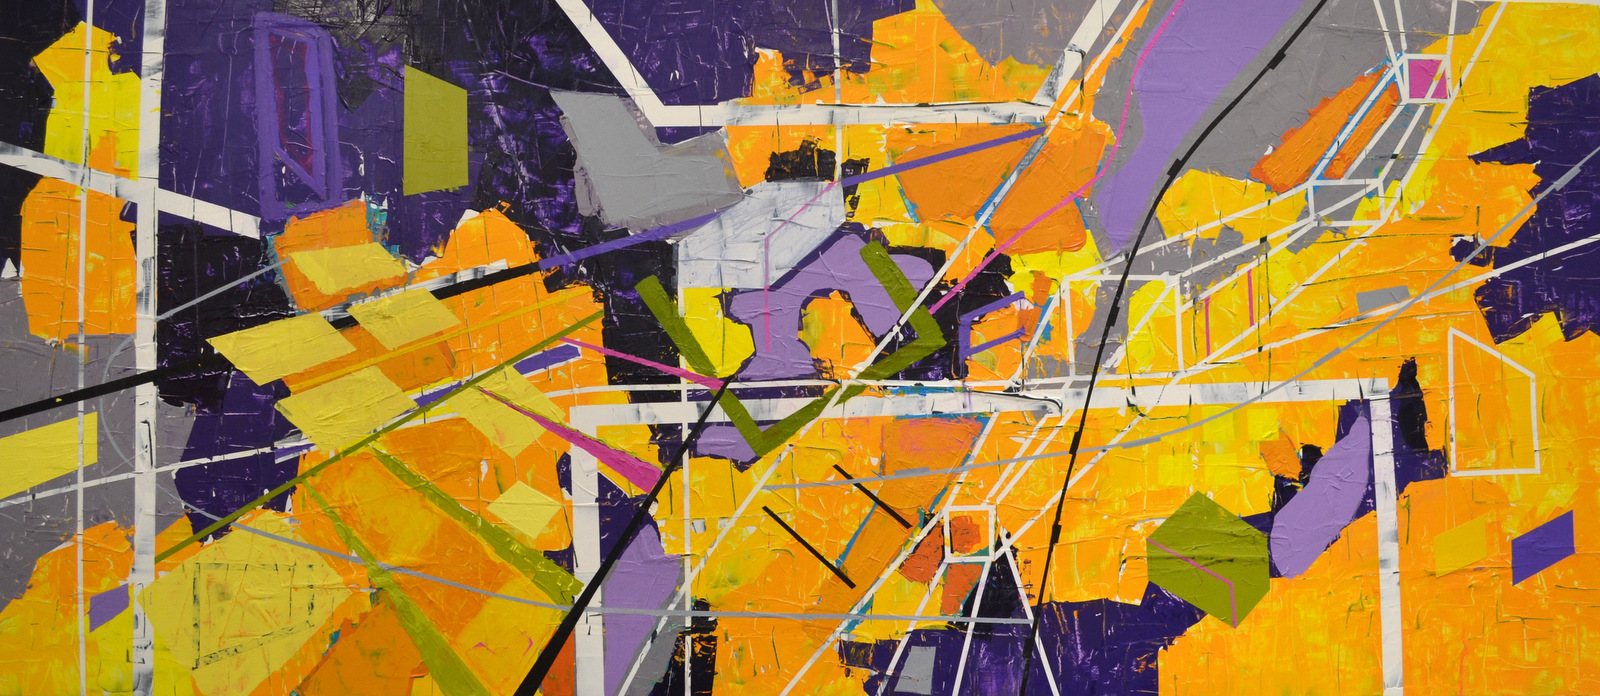 URBAN DYNAMICS - 33X76 - ACRYLIC ON BIRCH WOOD PANEL